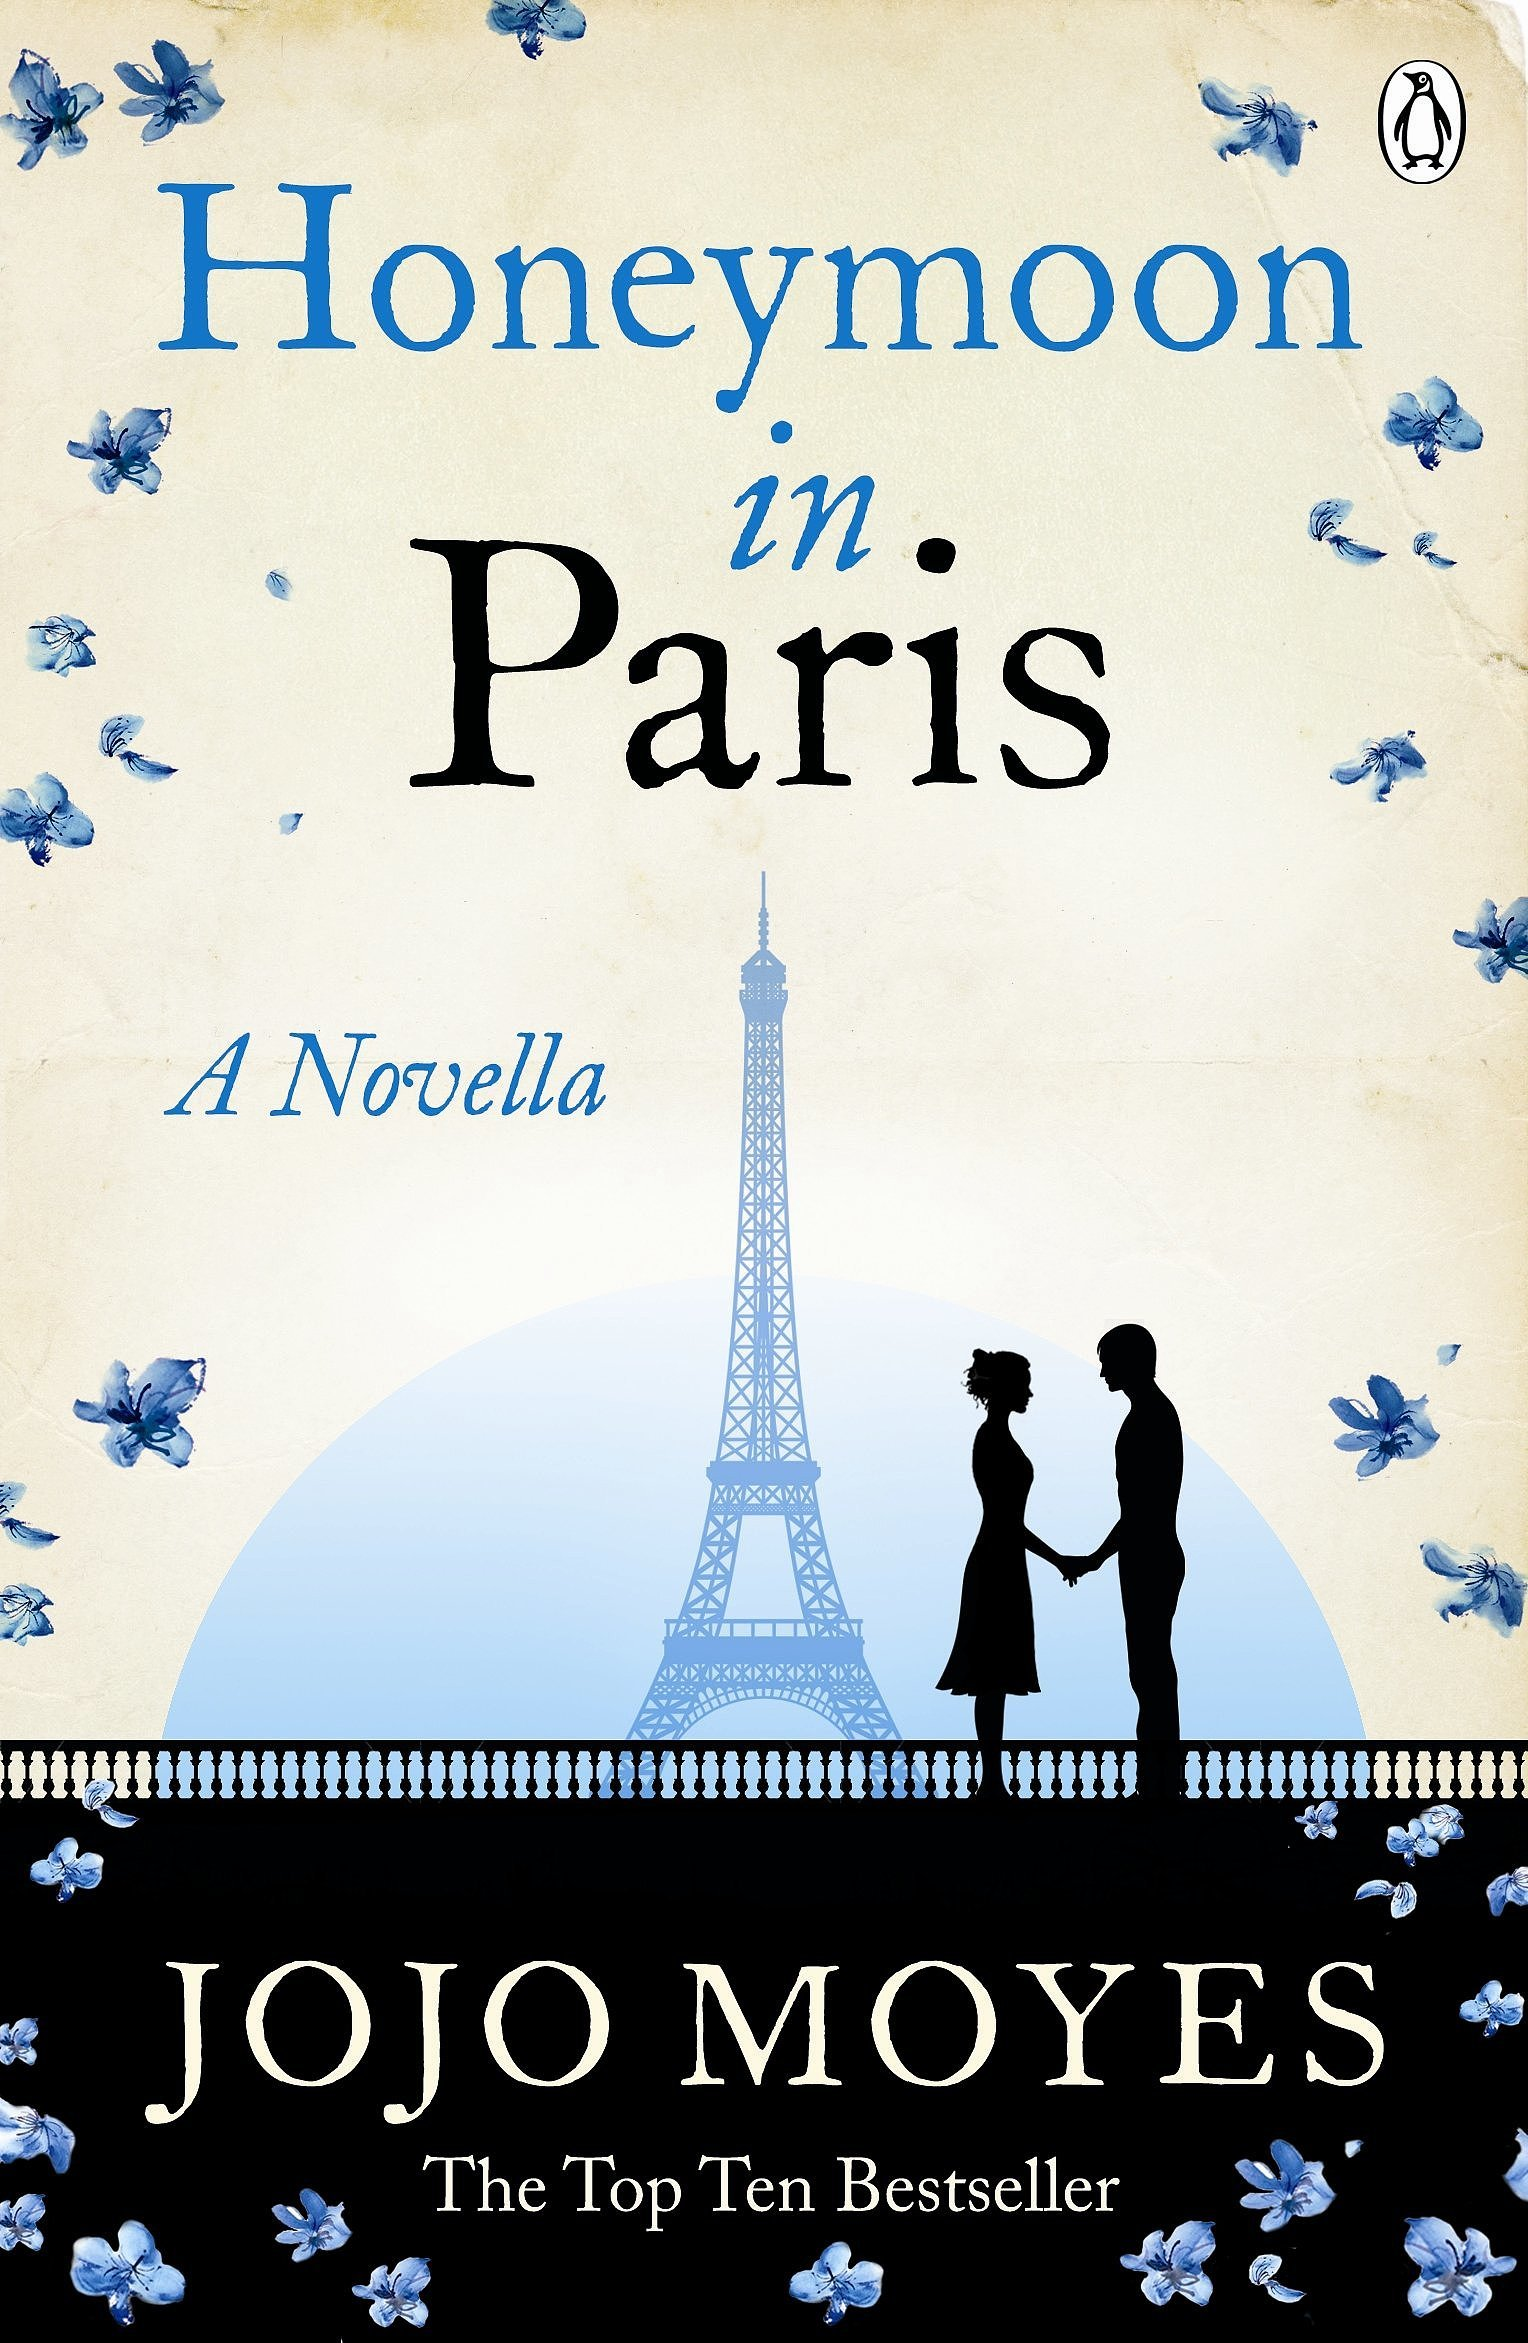 Honeymoon-Paris-JoJo-Moyes